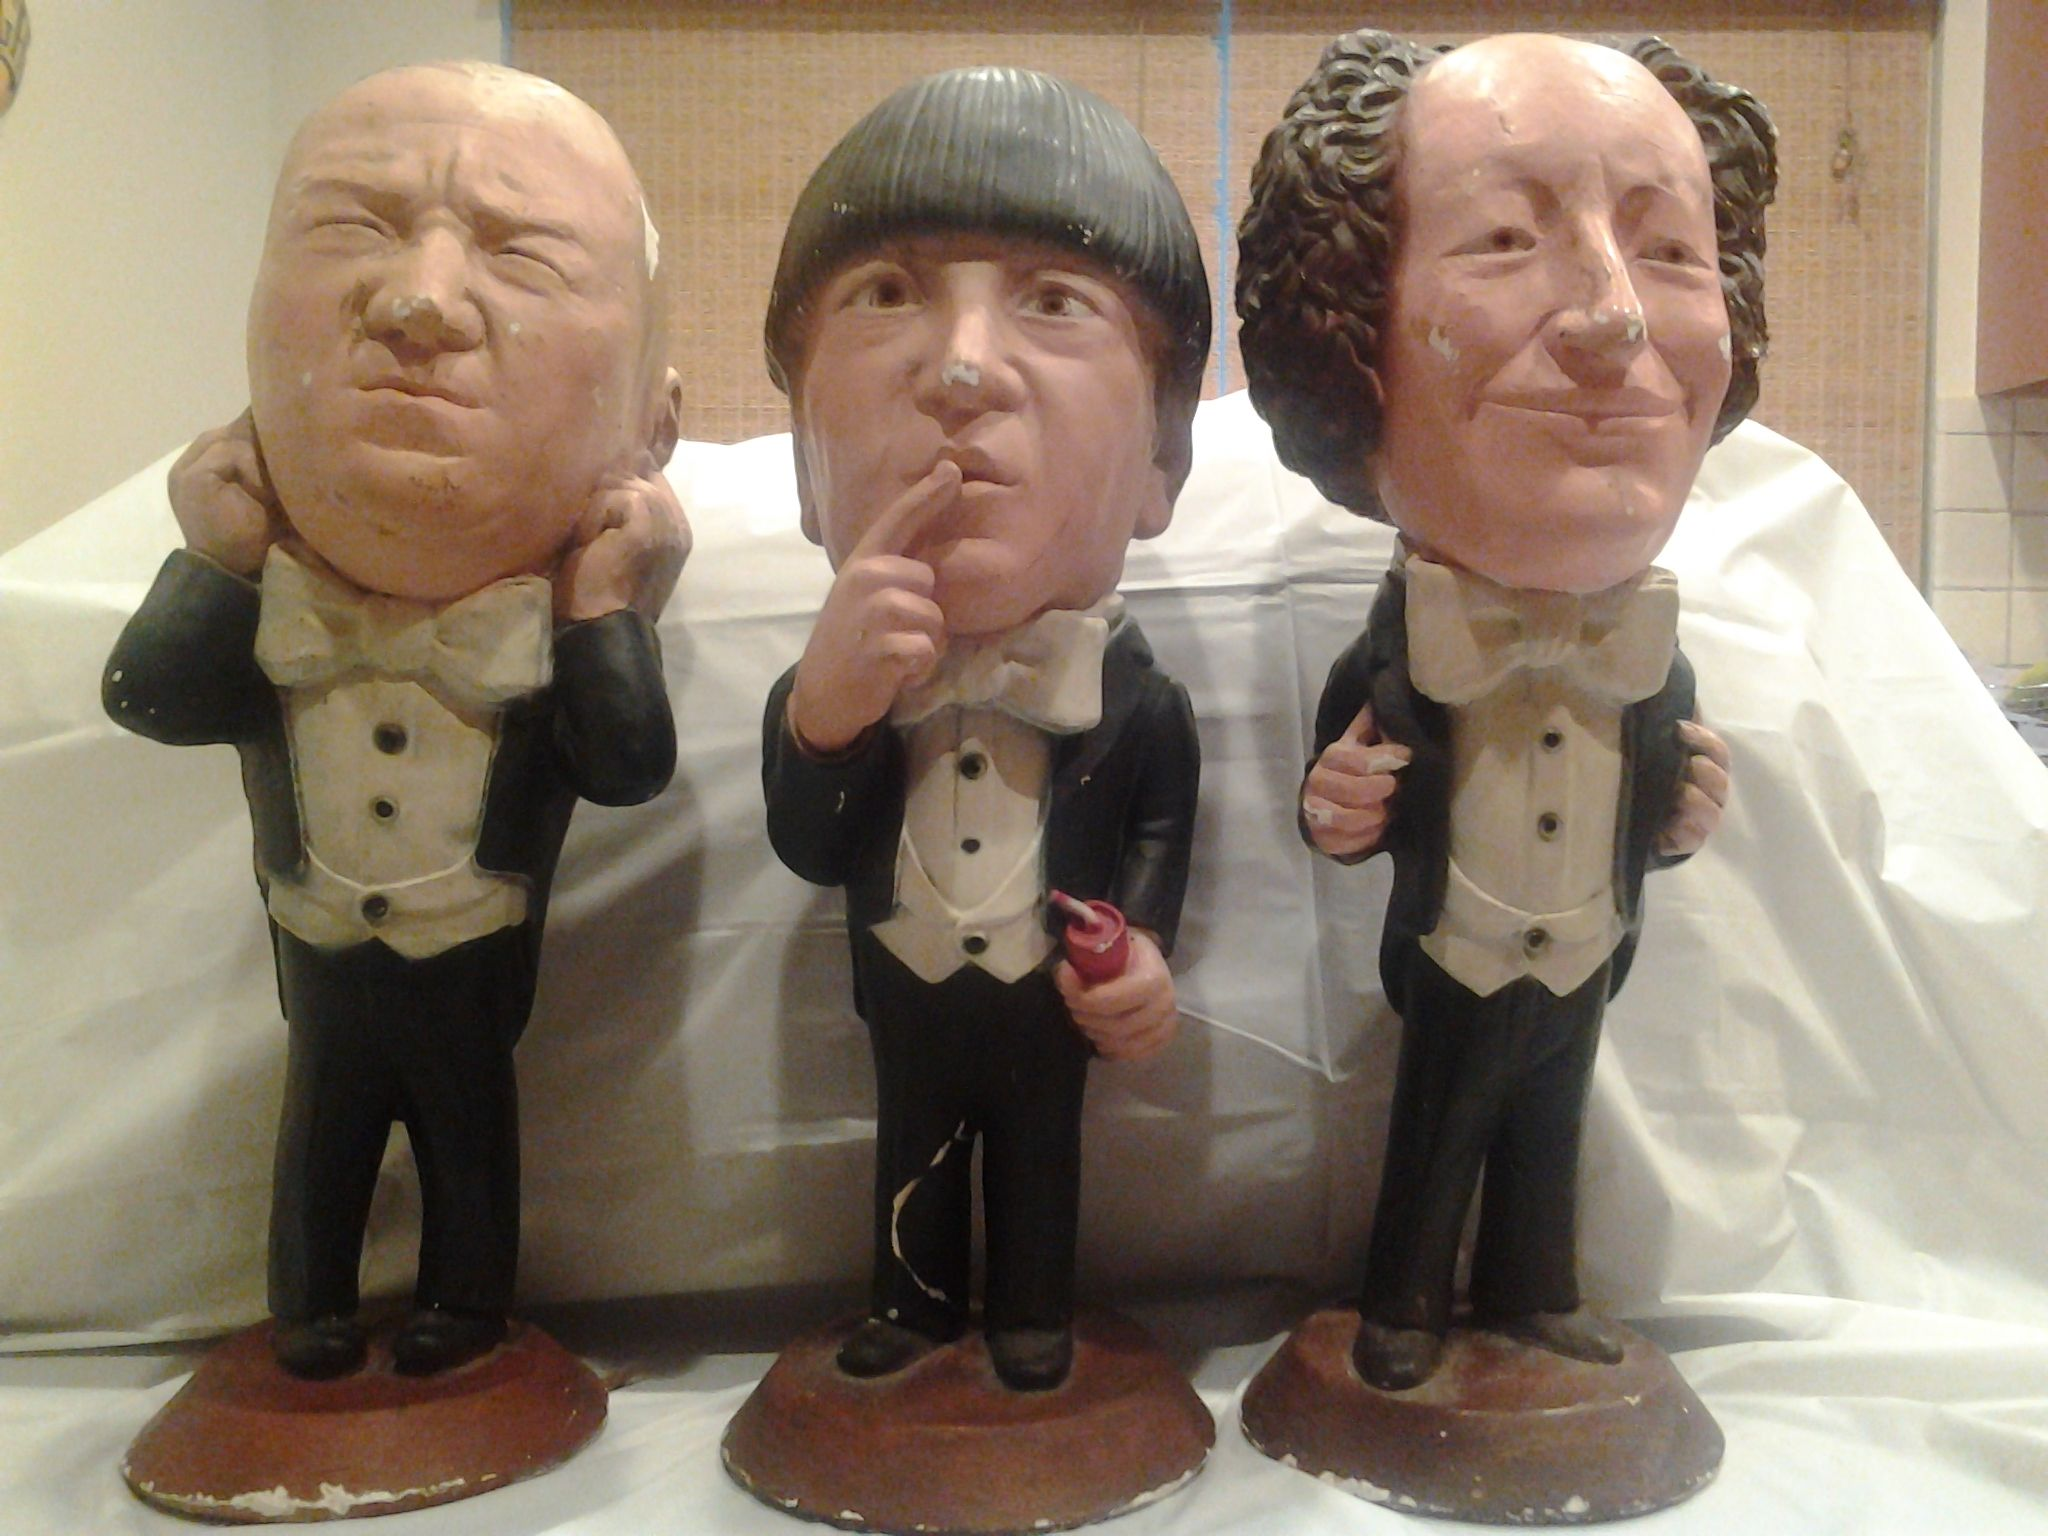 Three Stooges Map Of Europe.Three Stooges Figurines Could These Be More Chandler Across The